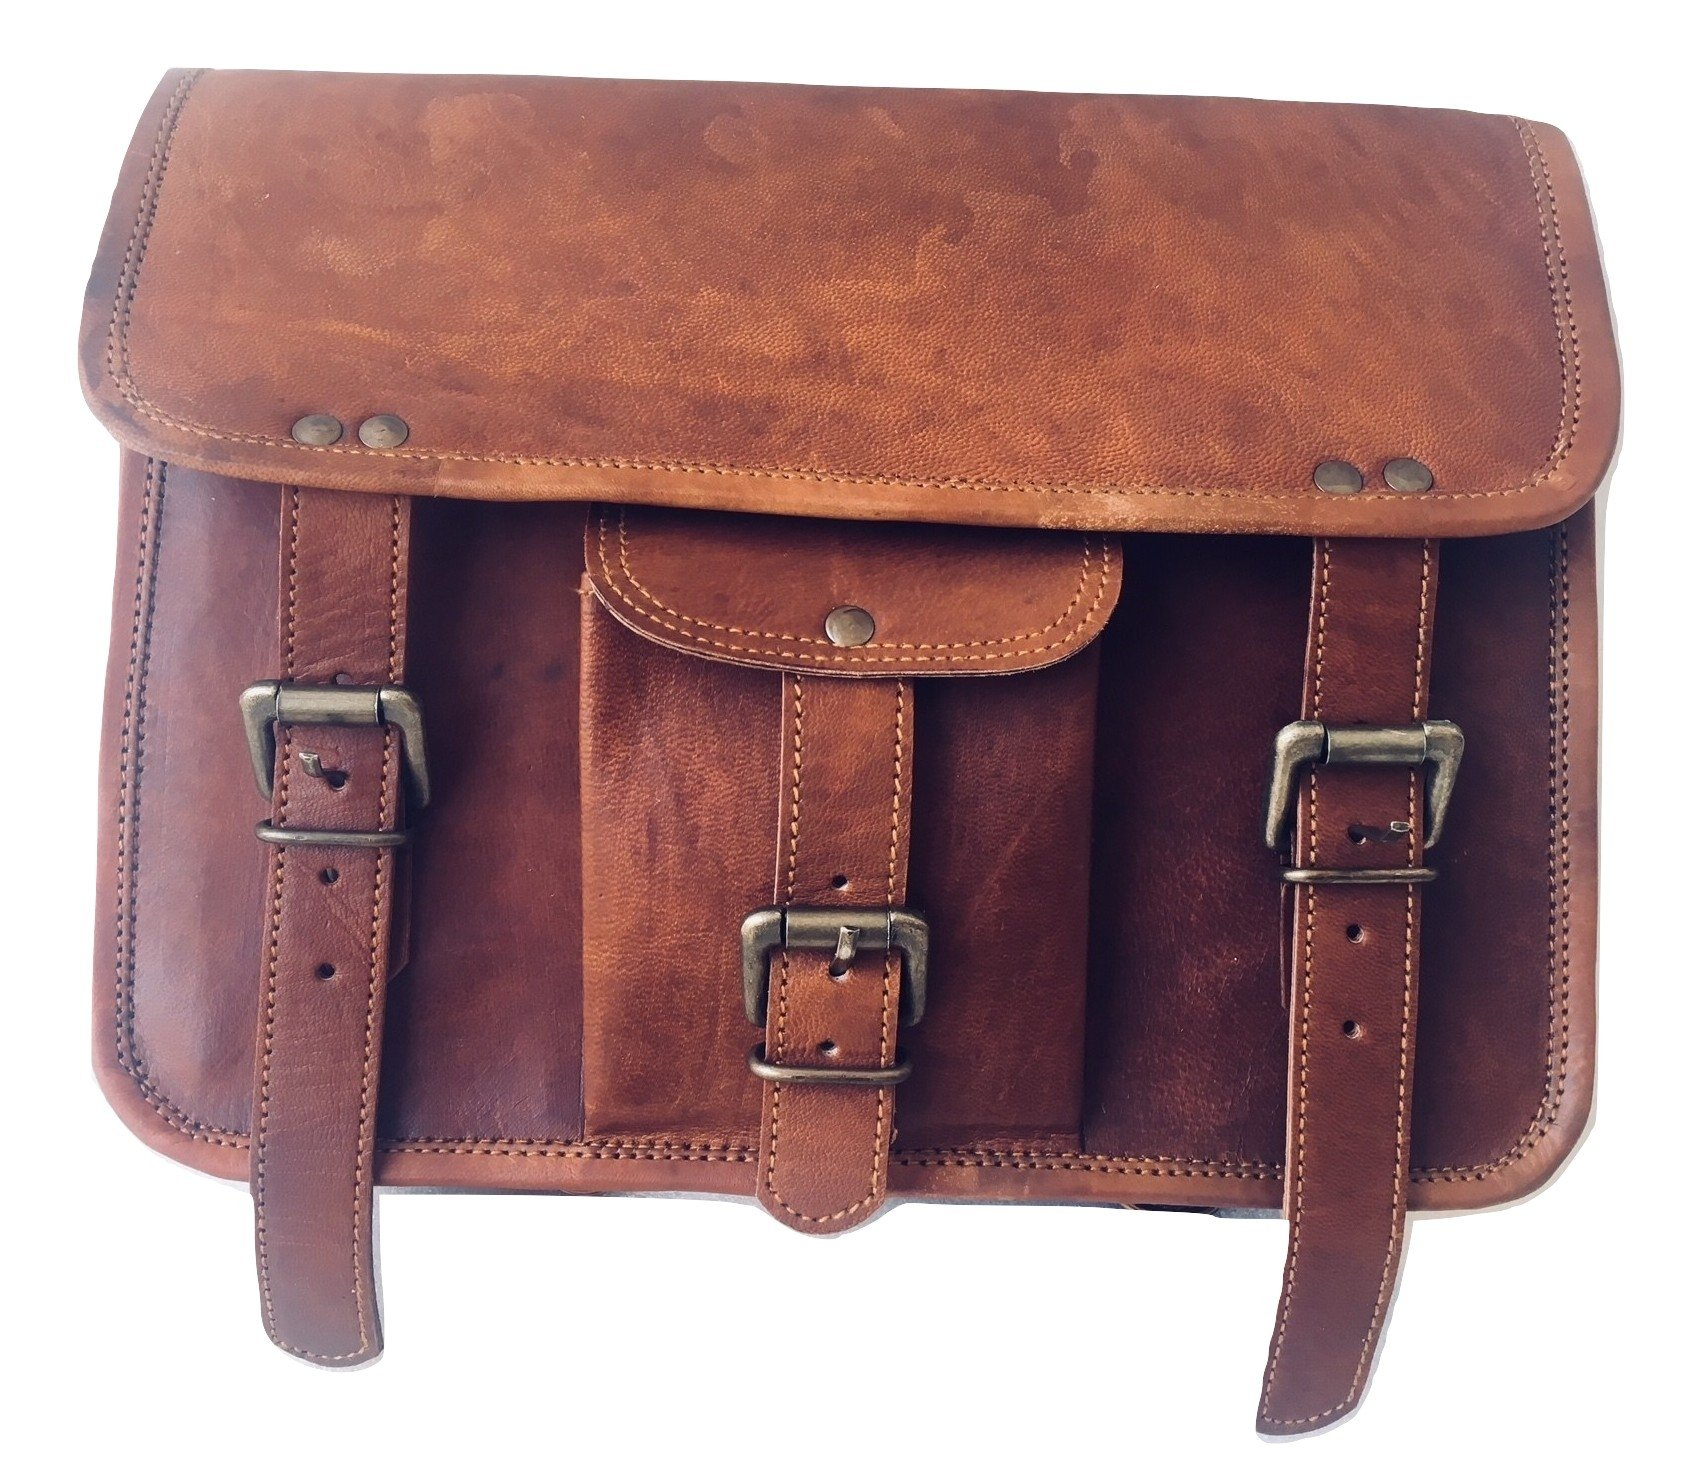 vintage crafts Genuine Goat Leather Messenger Satchel Motorcycle Tool Bag Brown Handlebar Sissy bar Travel Bag Saddlebags Panniers by vintage crafts